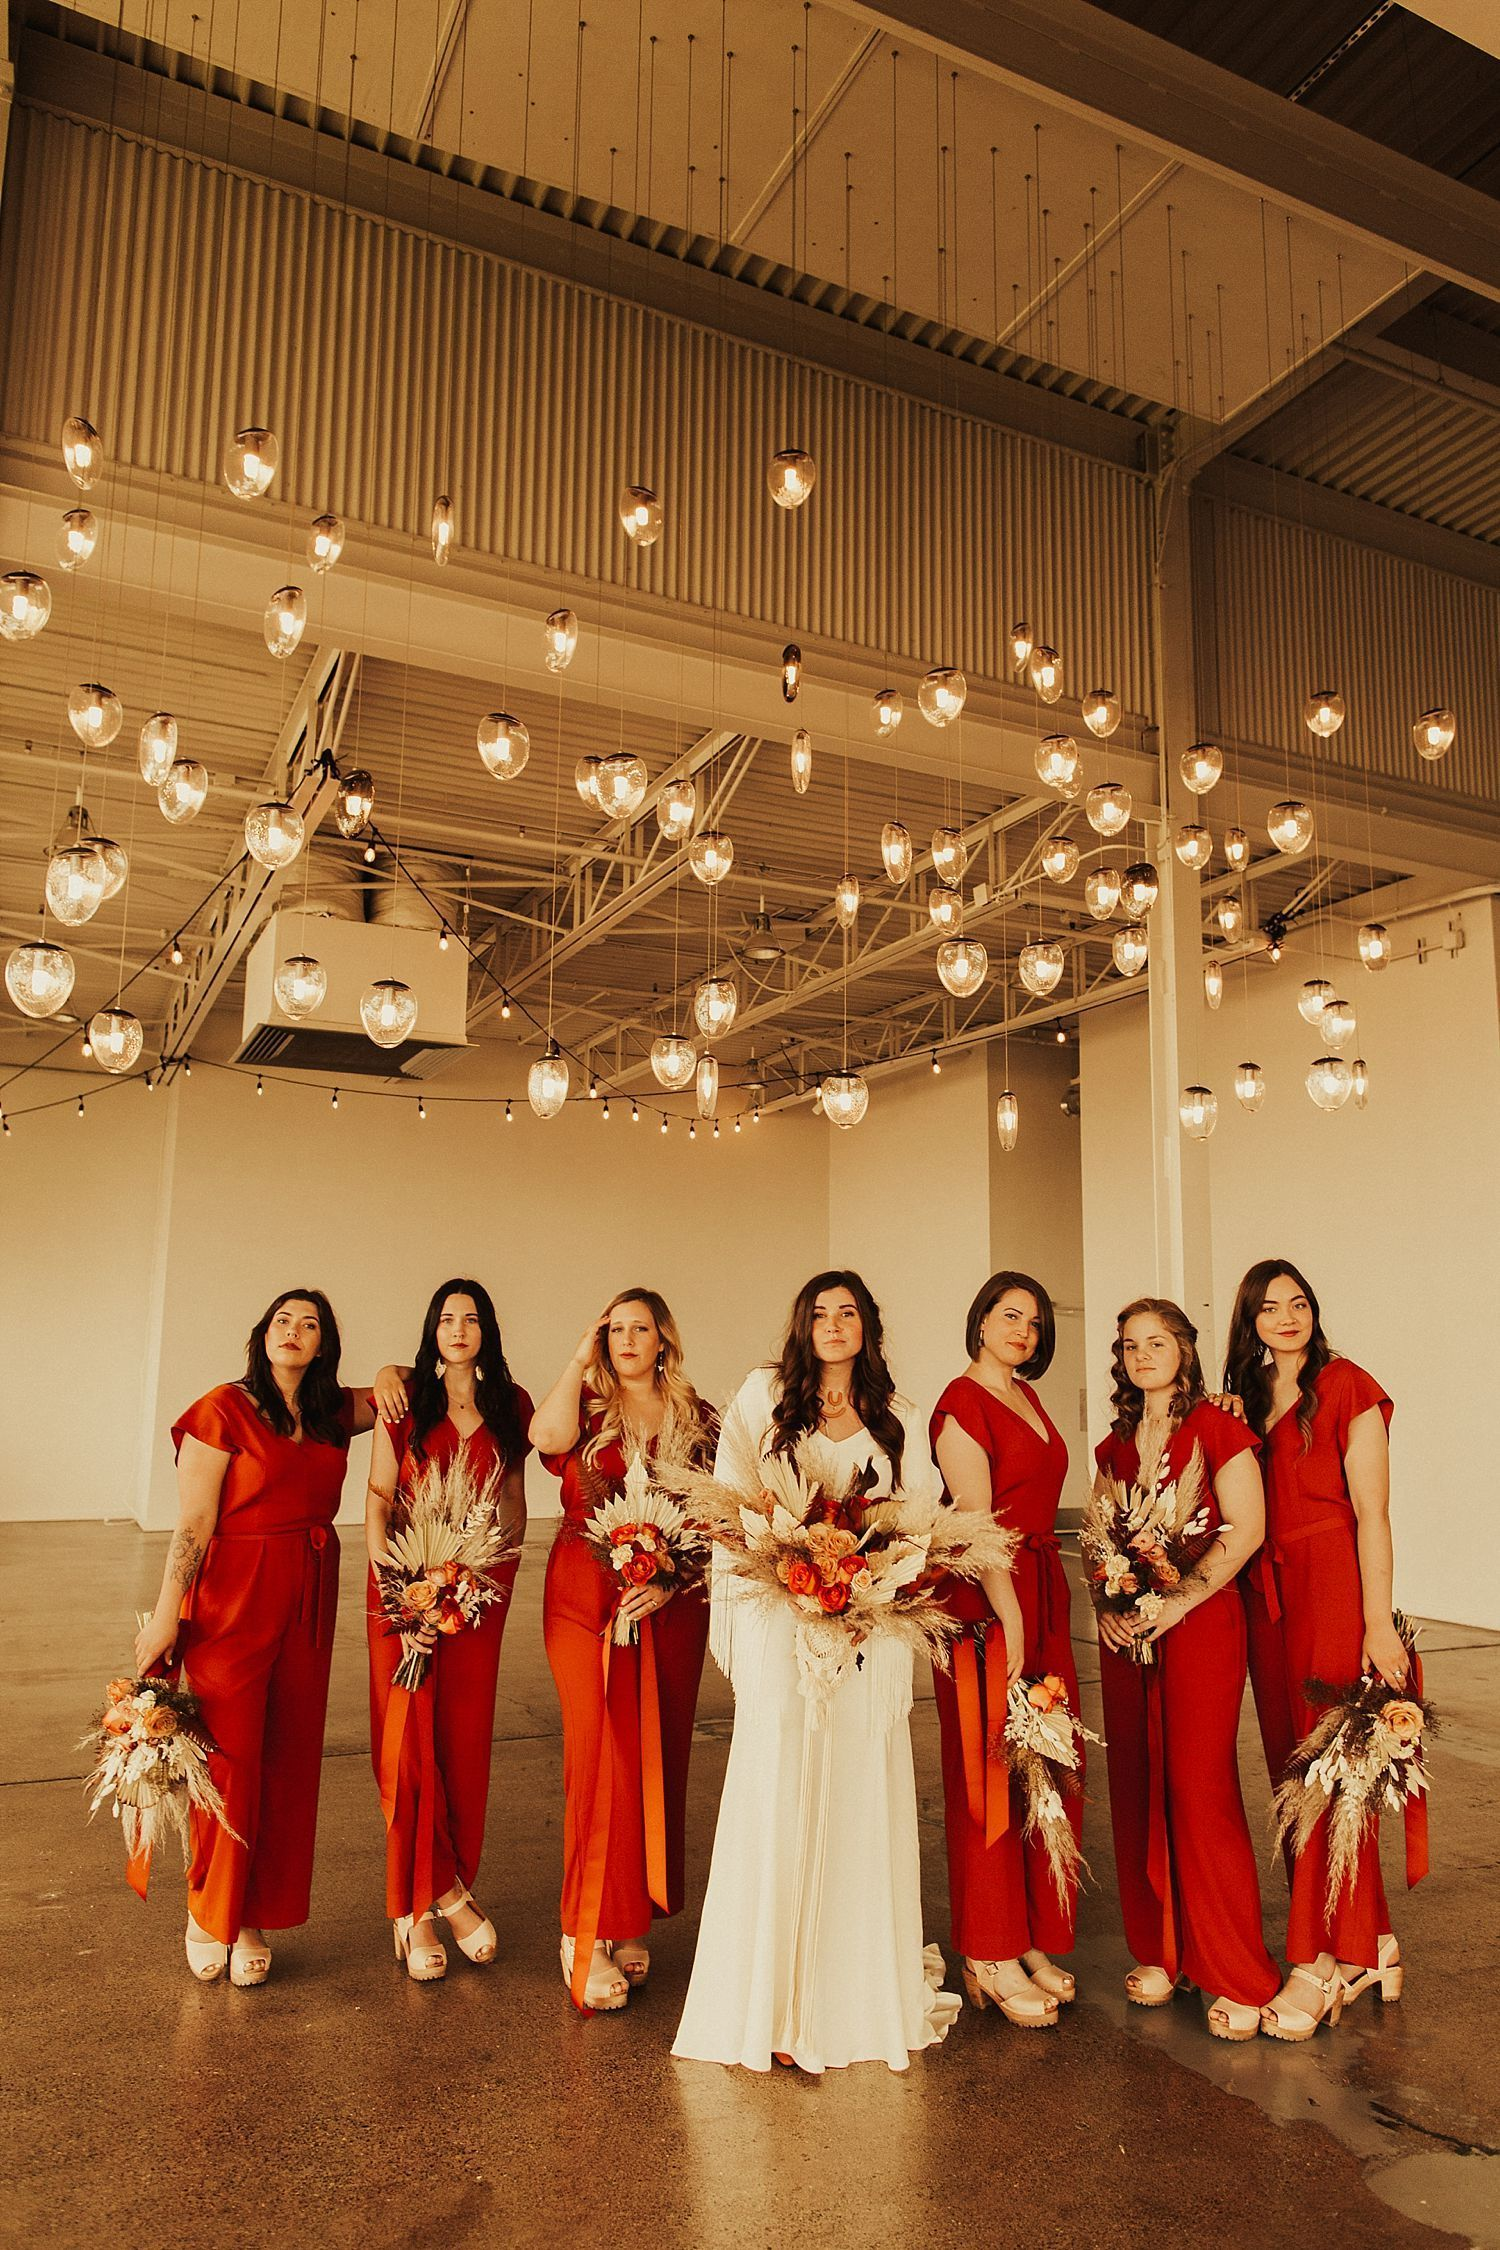 The Holden Room Wedding // Minneapolis, MN // Katy & Wyatt #bridesmaidjumpsuits Boho Wedding Party, Burnt Orange Bridesmaid Jumpsuits, Terra Cotta Wedding Colors, Pampas Grass Wedding Bouquet, Fringe Wedding Bouquet Holder, Boho Bridesmaids, Jumpsuit Bridesmaids #bridesmaidjumpsuits